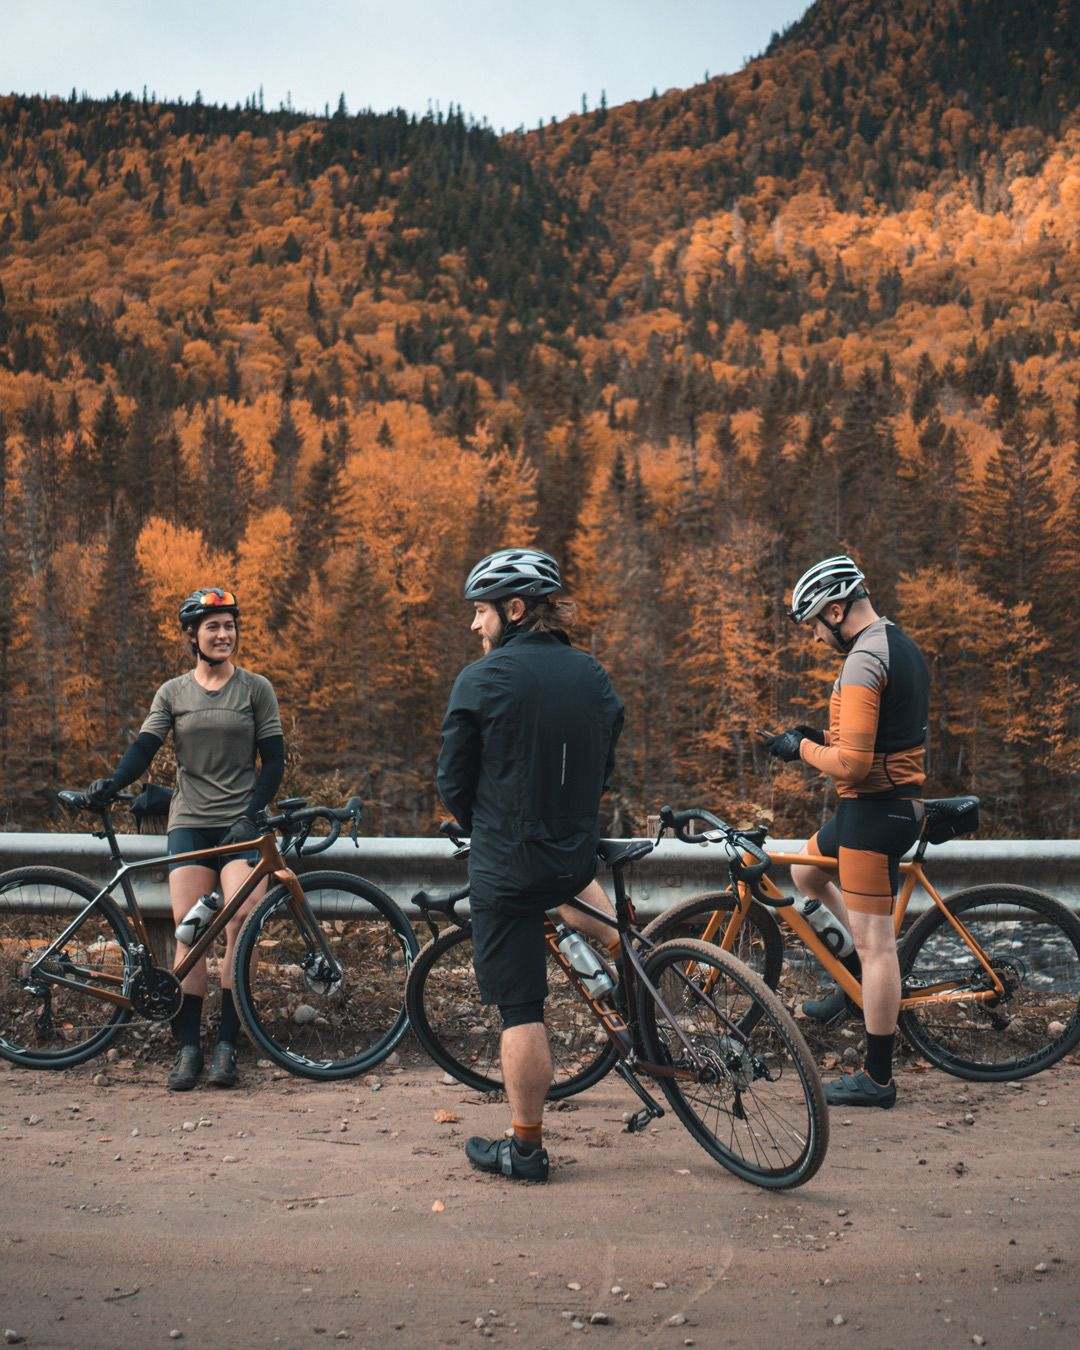 trio of long distance bikers talking on side of the road with mountains covered in orange colored trees in the background for Spring Summer 2020 campaign of Louis Garneau with artistic direction and styling by Studio TB